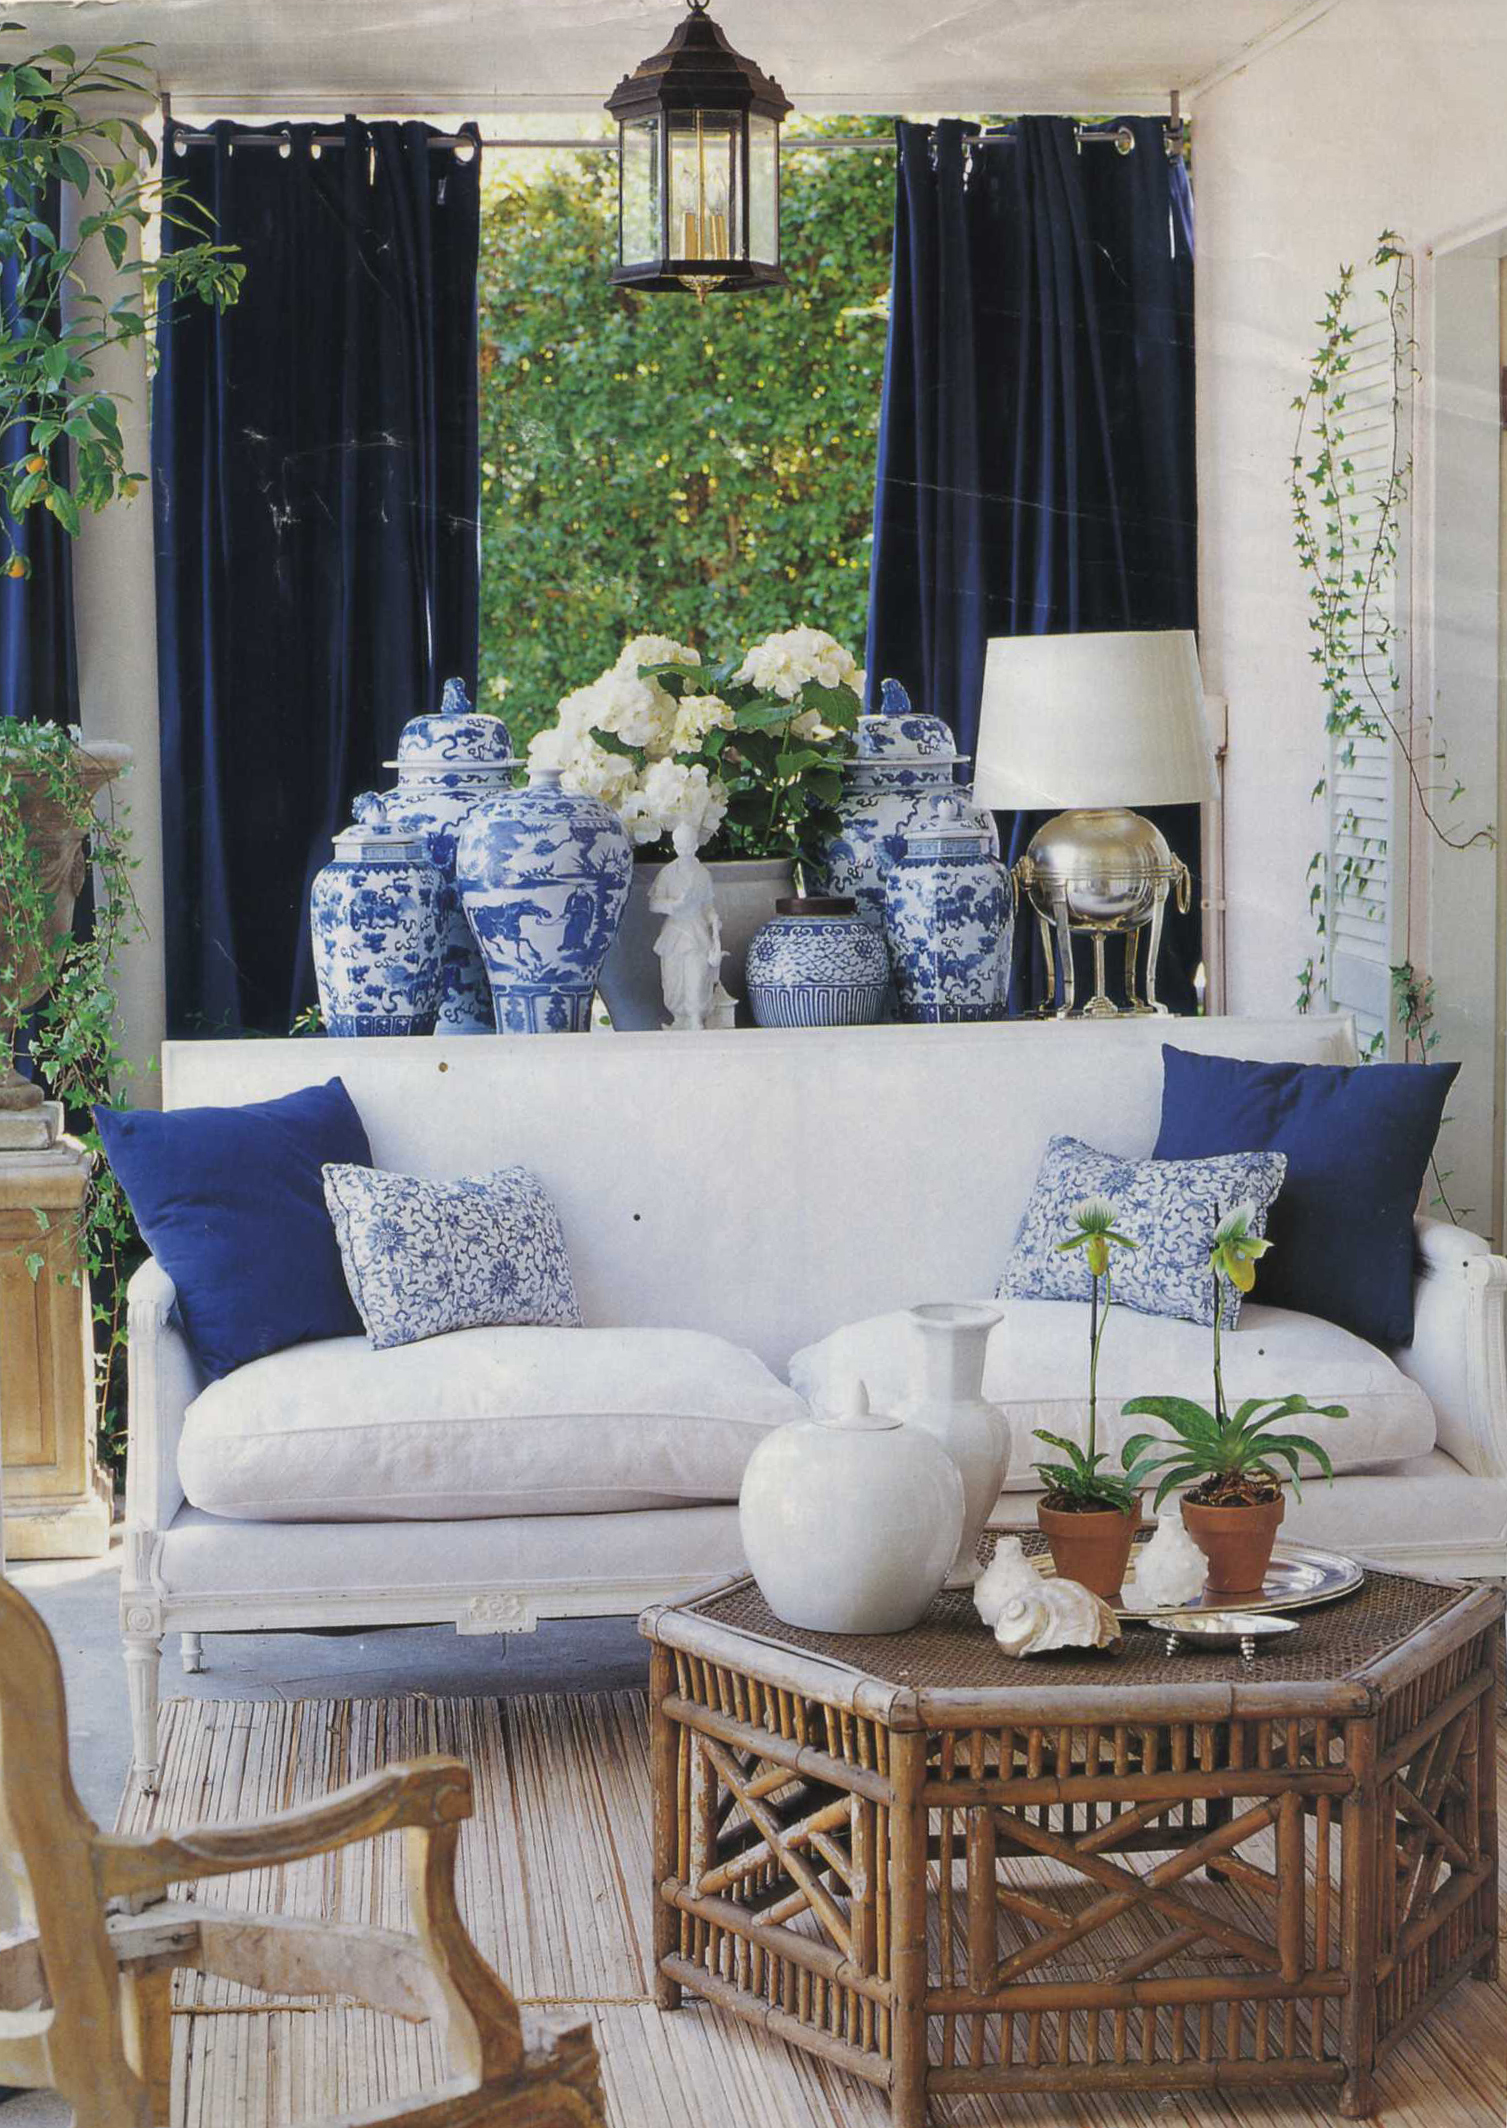 Chinoiserie Chic The History of Blue and White Porcelain  Daily Brilliant